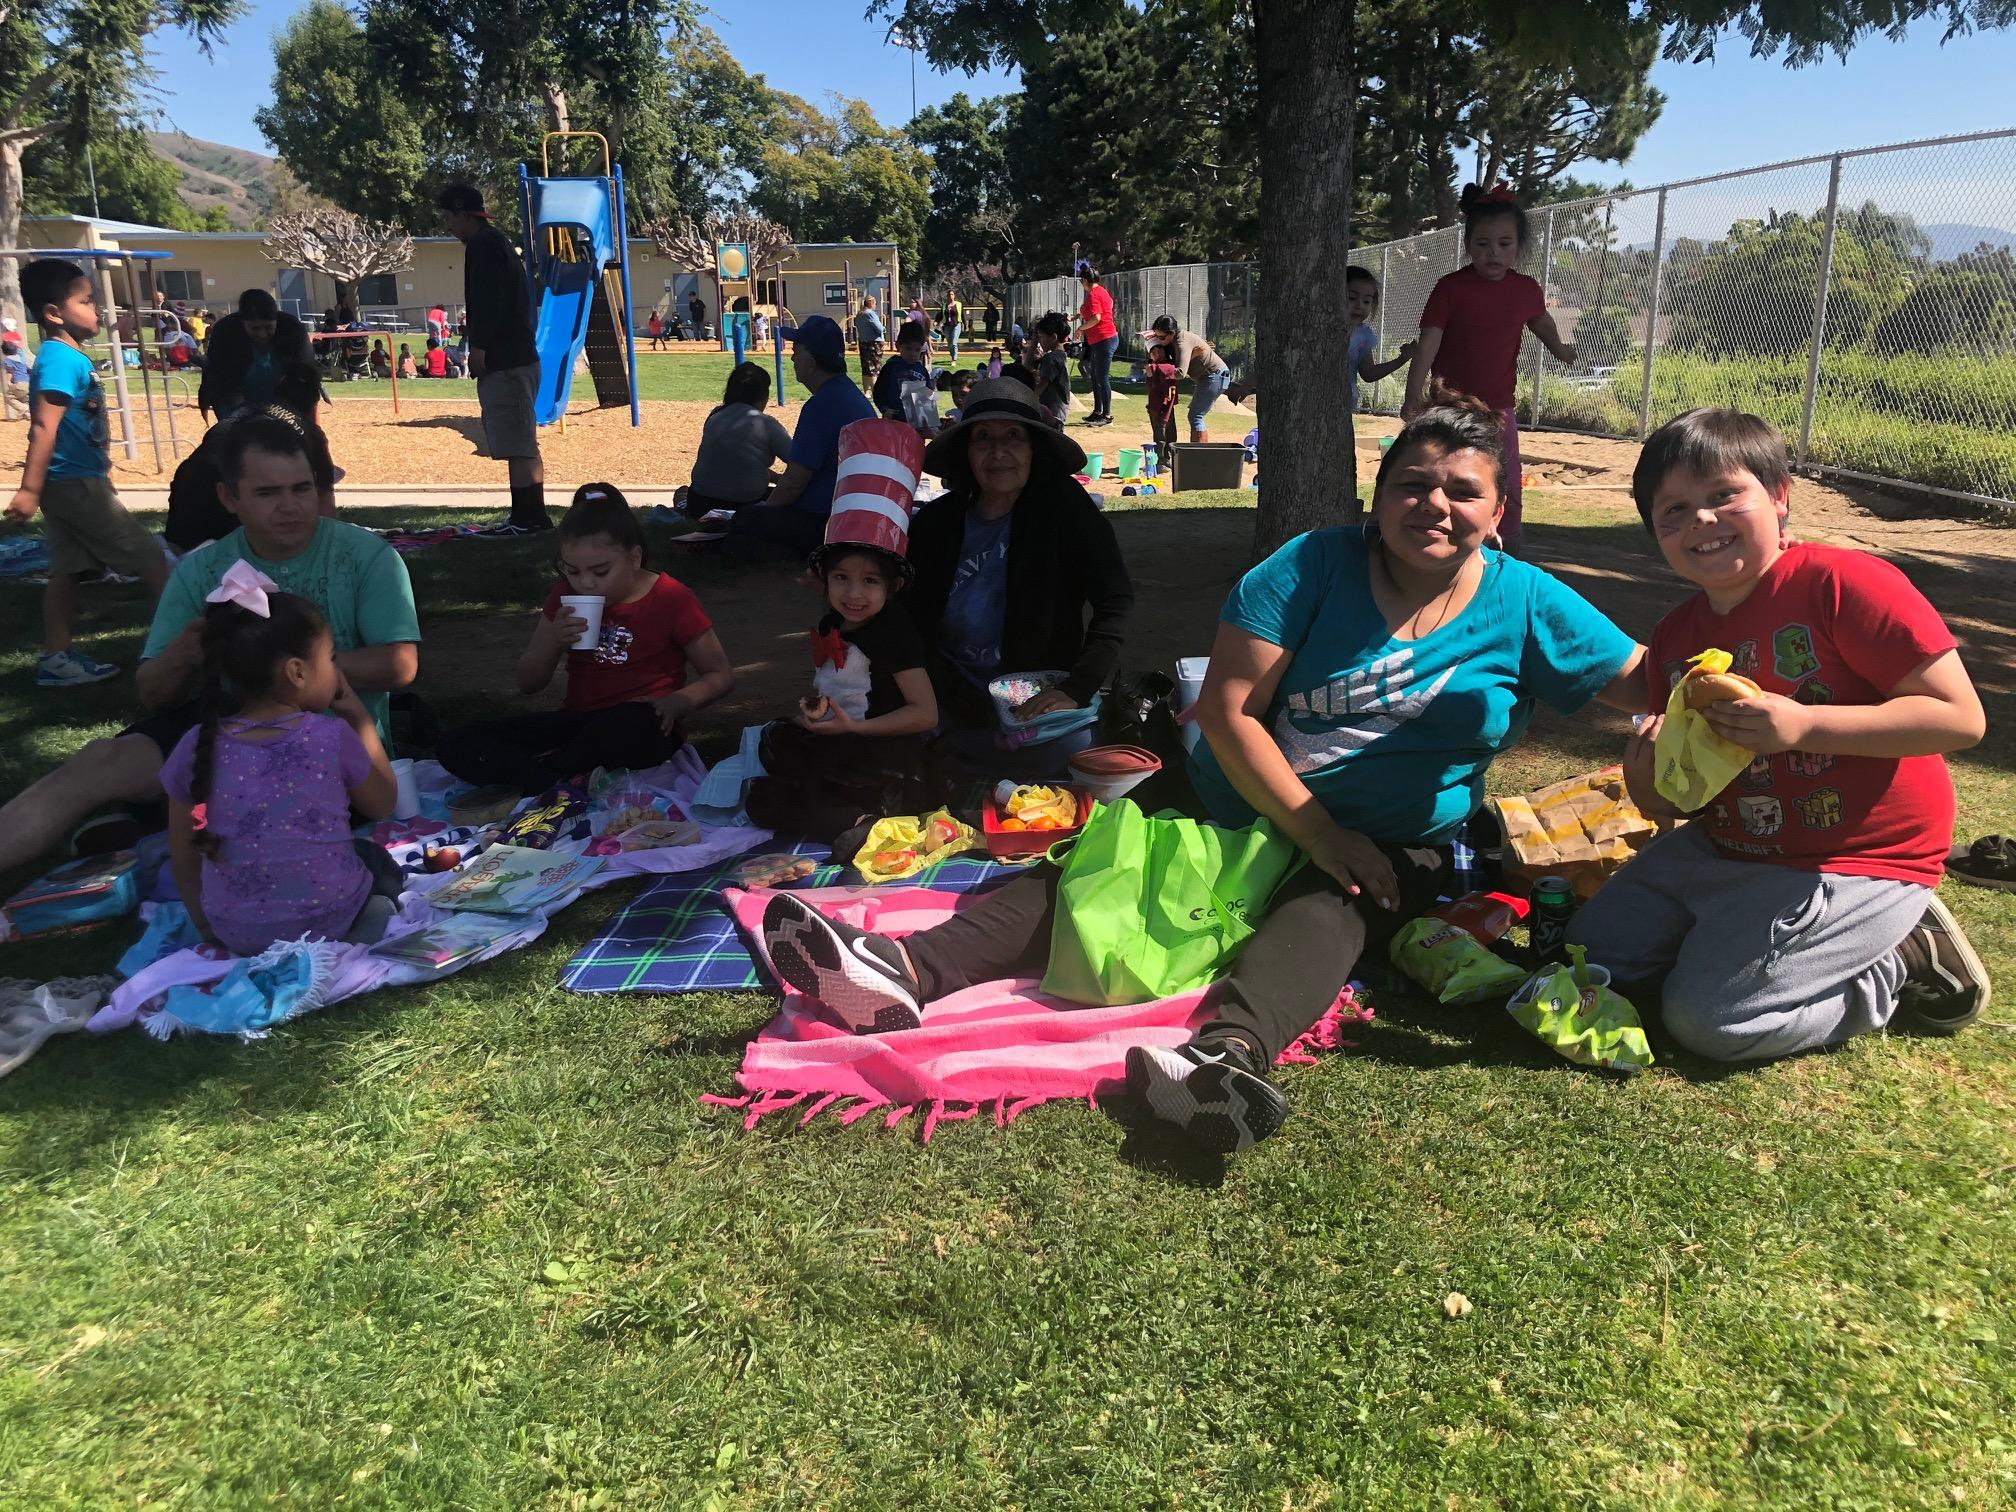 Our Book-Nic was a great success! ¡Disfrutando nuestros libros y picnic!